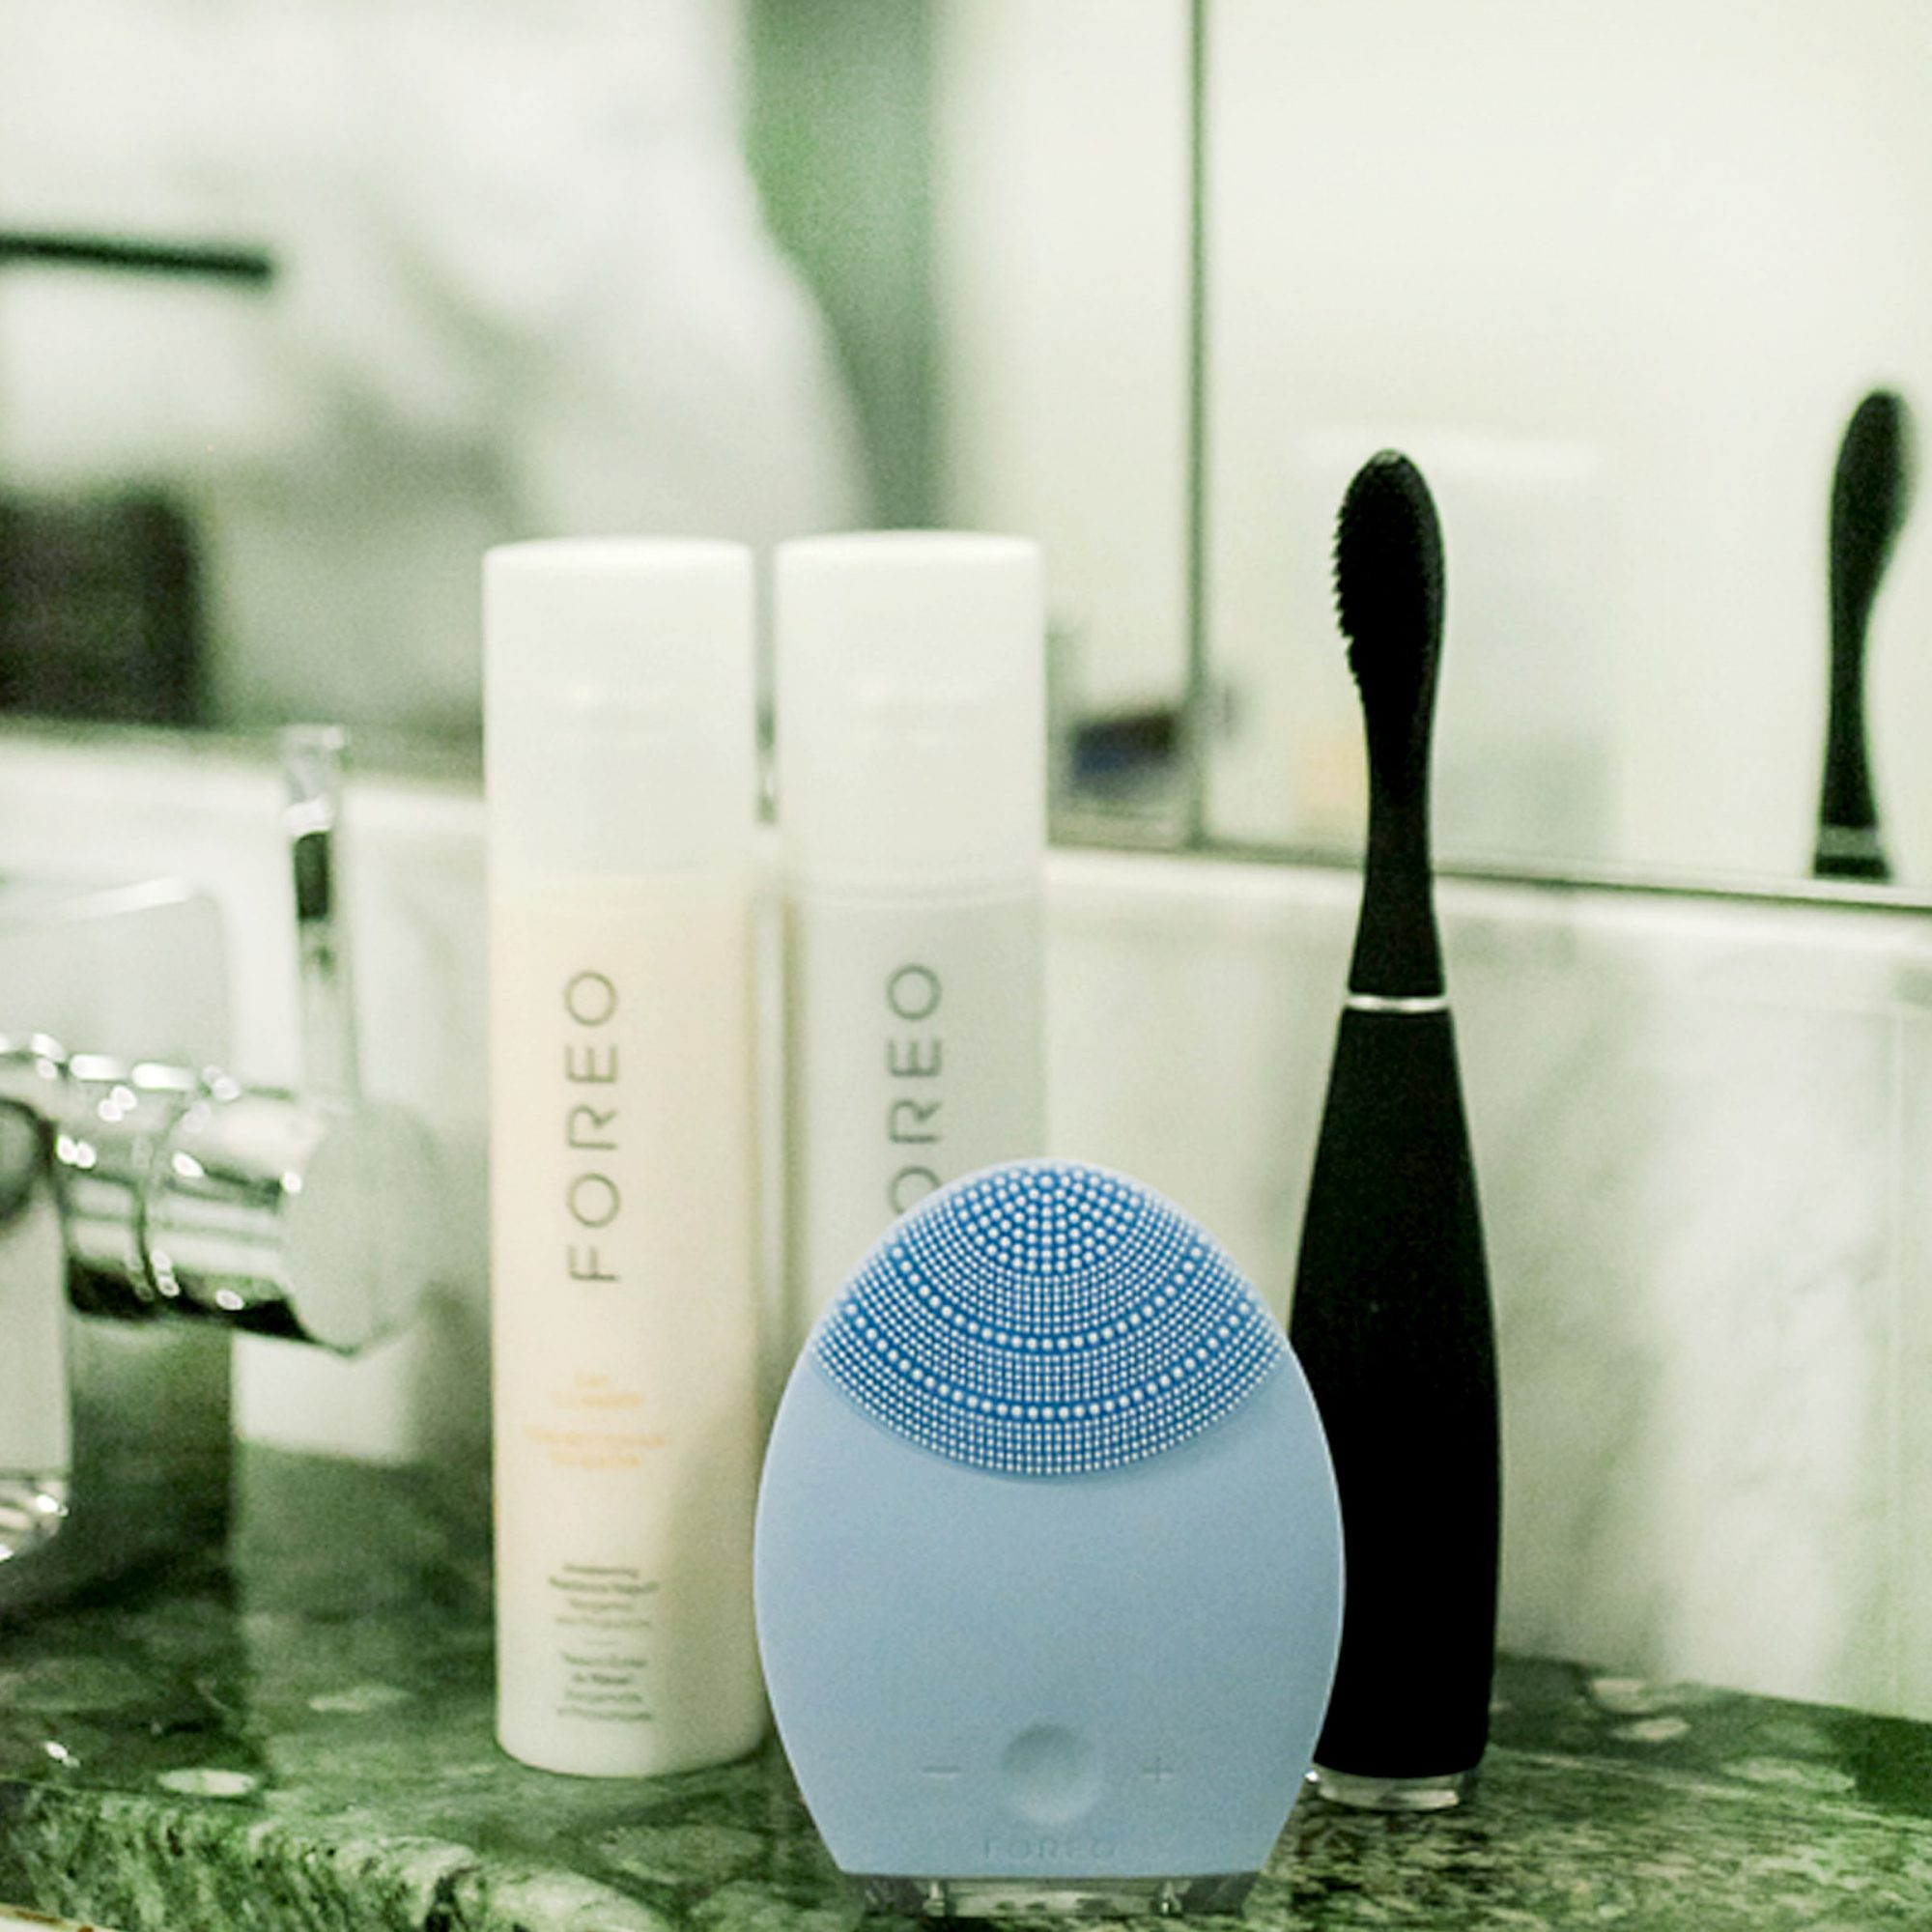 Foreo Products Review by Blogger Chic Stylista